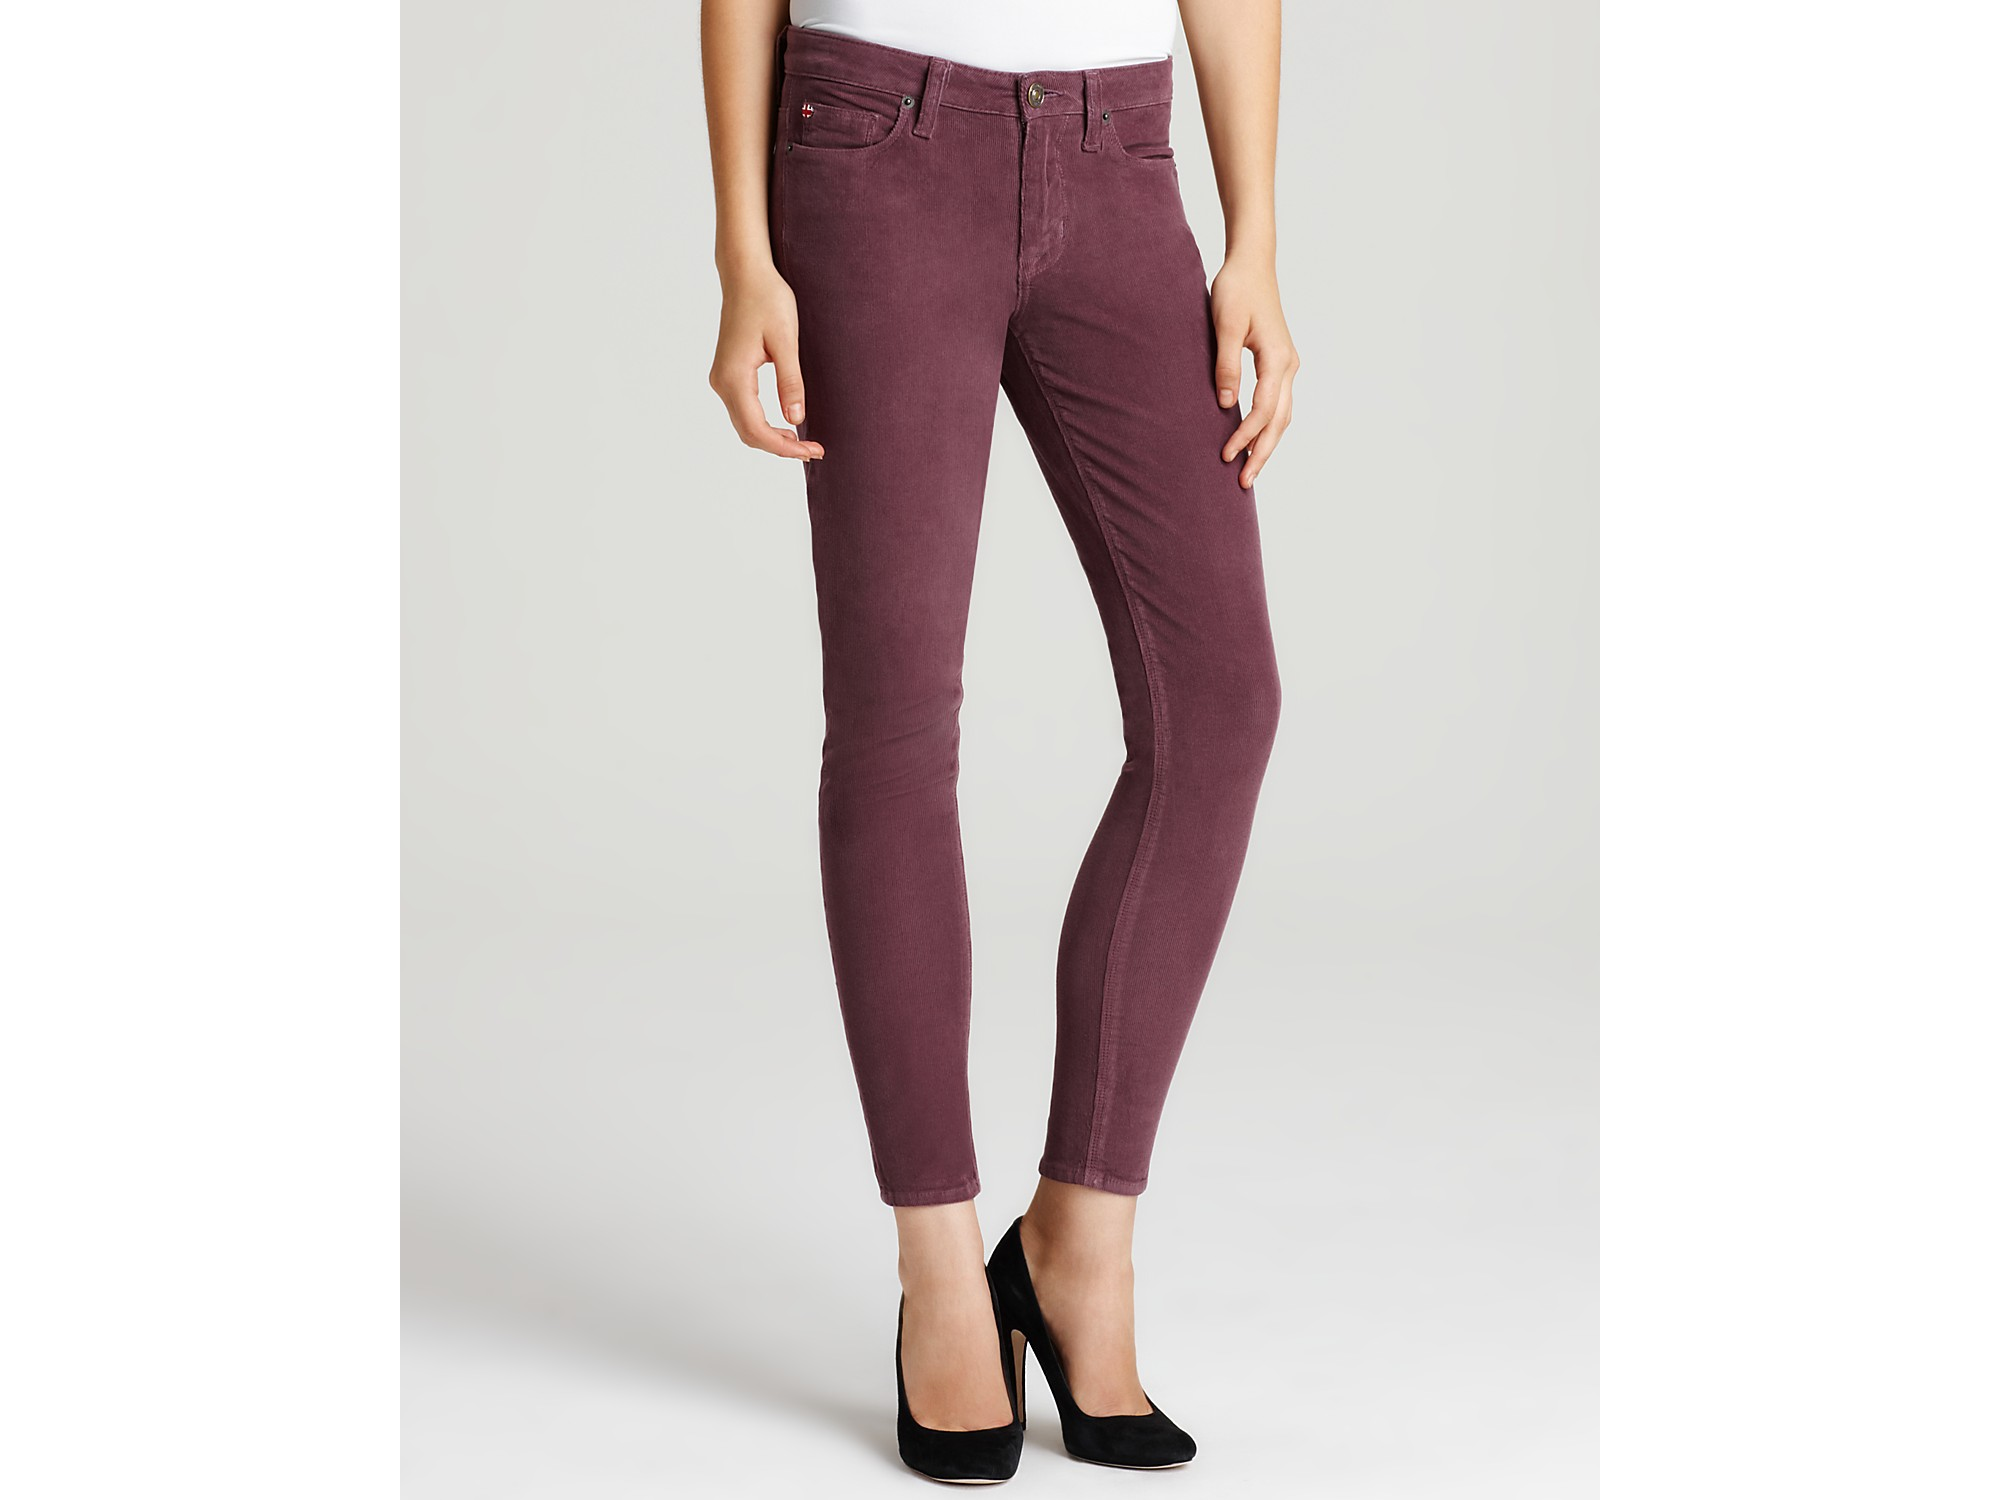 Hudson jeans Nico Super Skinny Corduroy Pants in Plum in Purple | Lyst